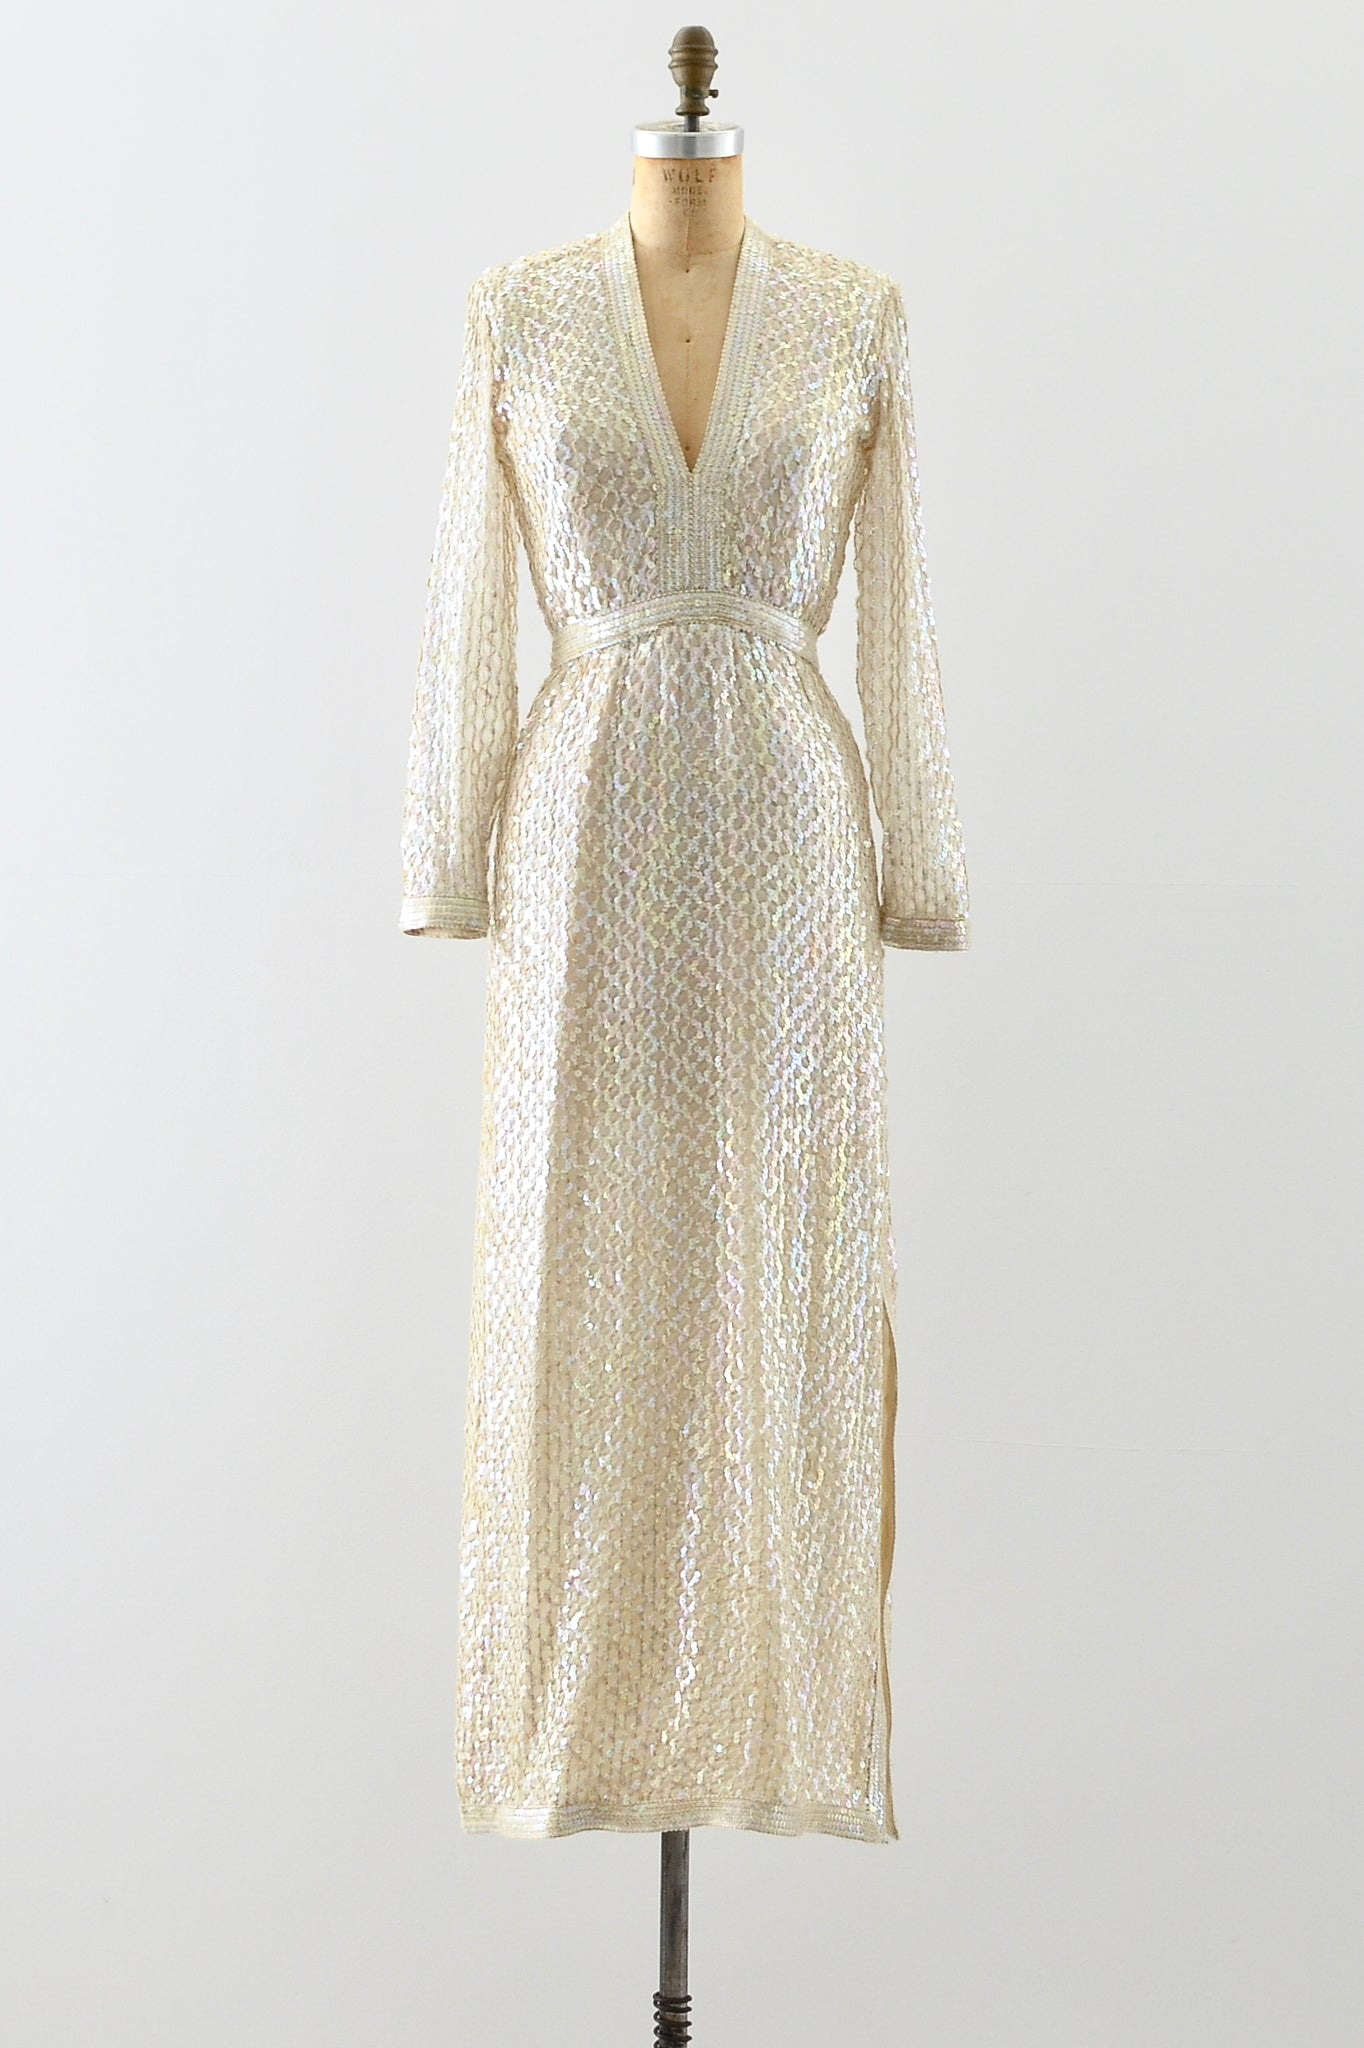 Fred Perlberg Dress - Pickled Vintage